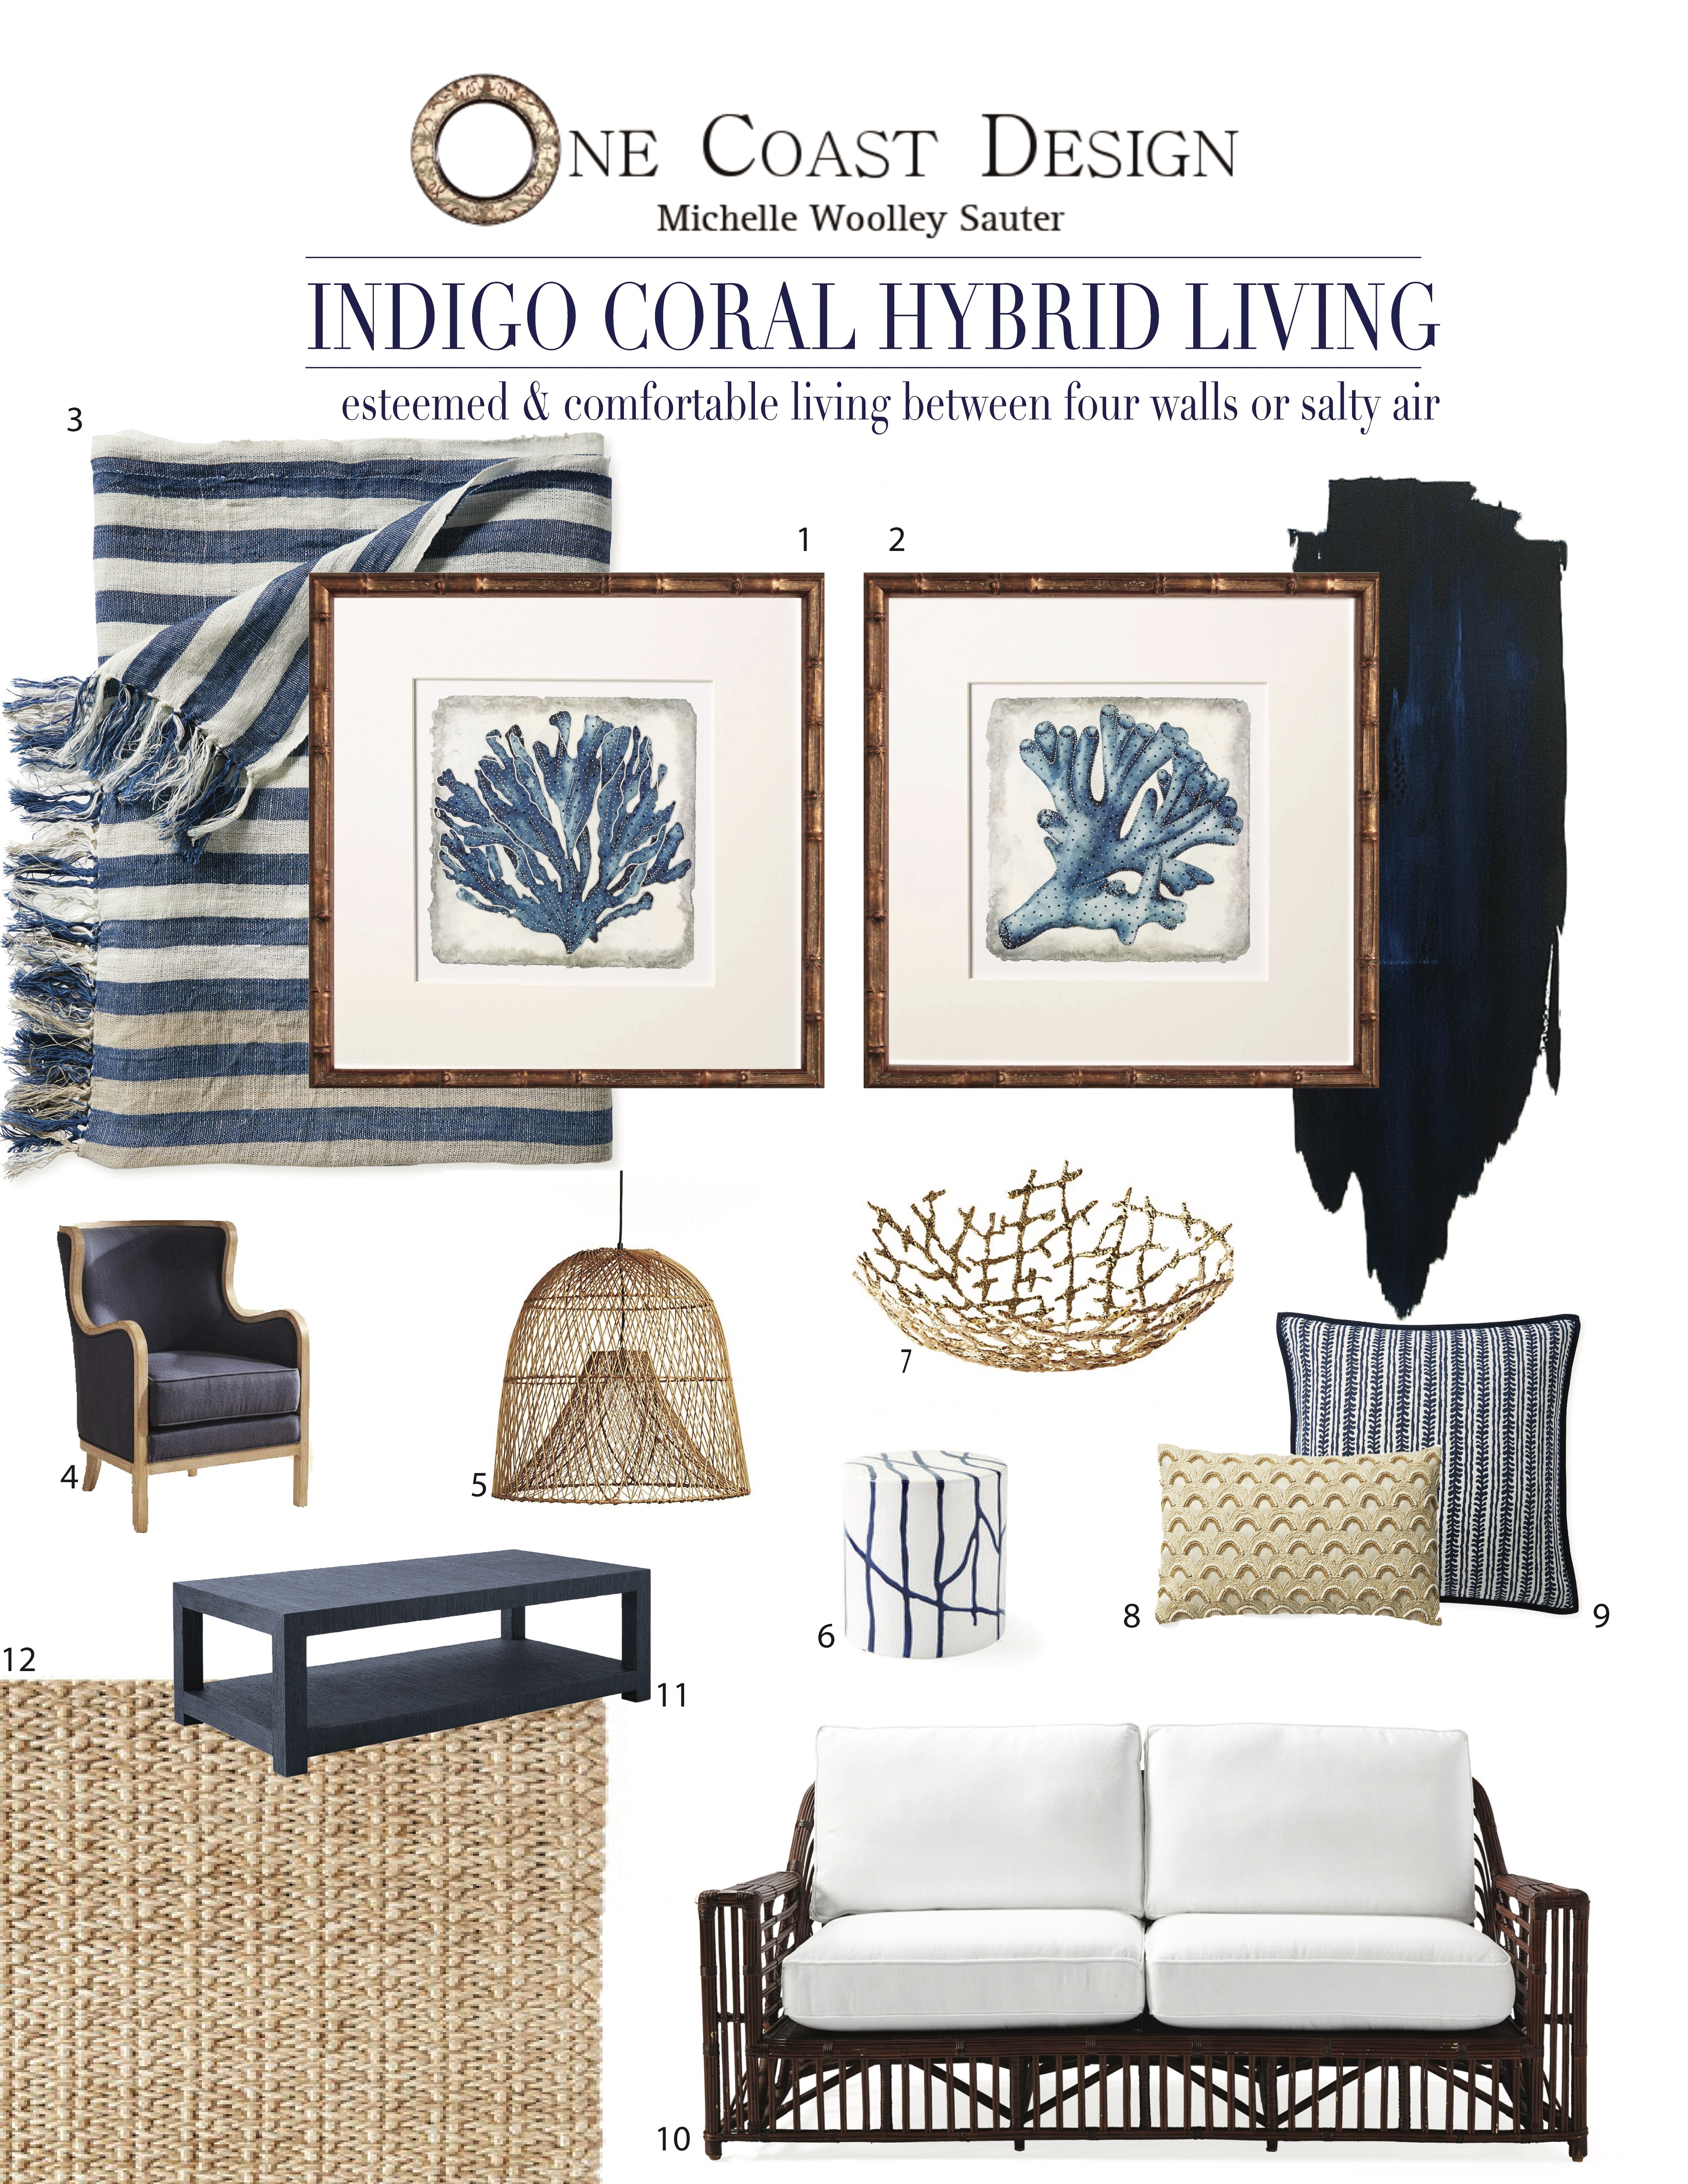 Summer Design Ideas, One Coast Design, One Coast Design, Michelle Woolley Sauter